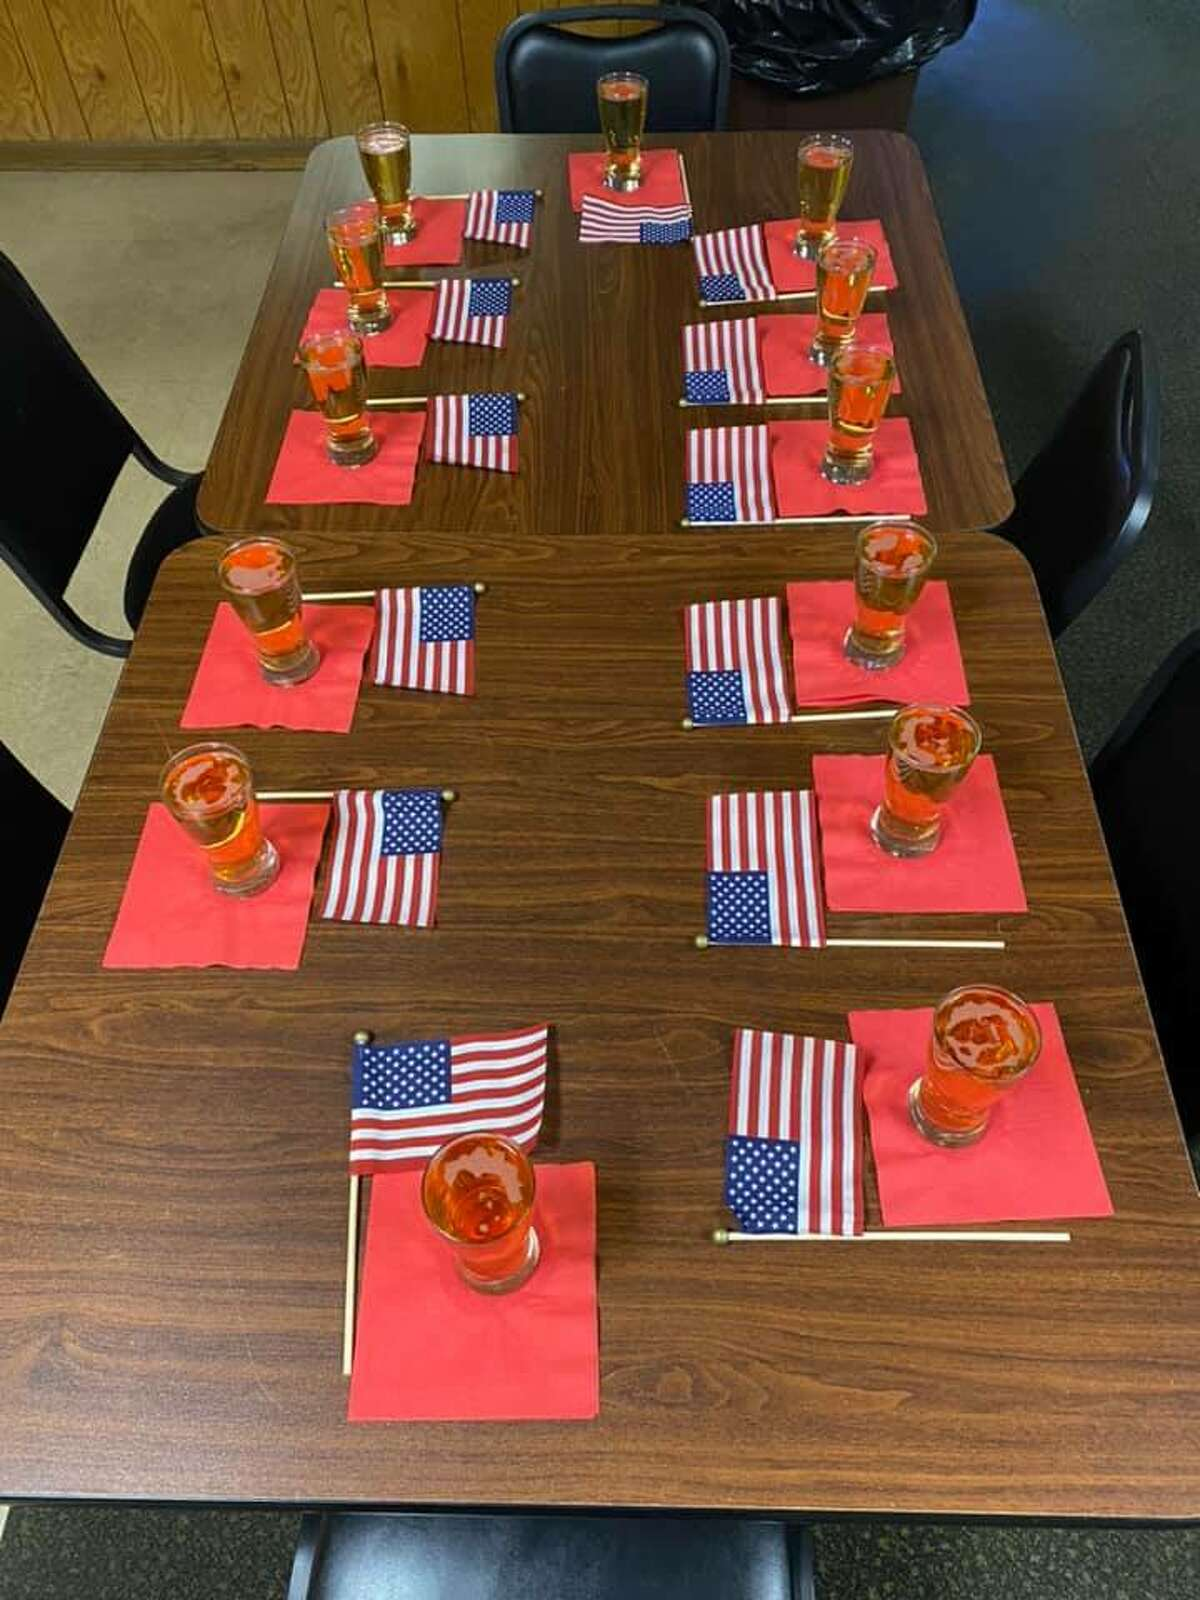 The Morley American Legion Post #554 paid tribute to the recently fallen 13 United States service in what has become a nationwide viral sensation.